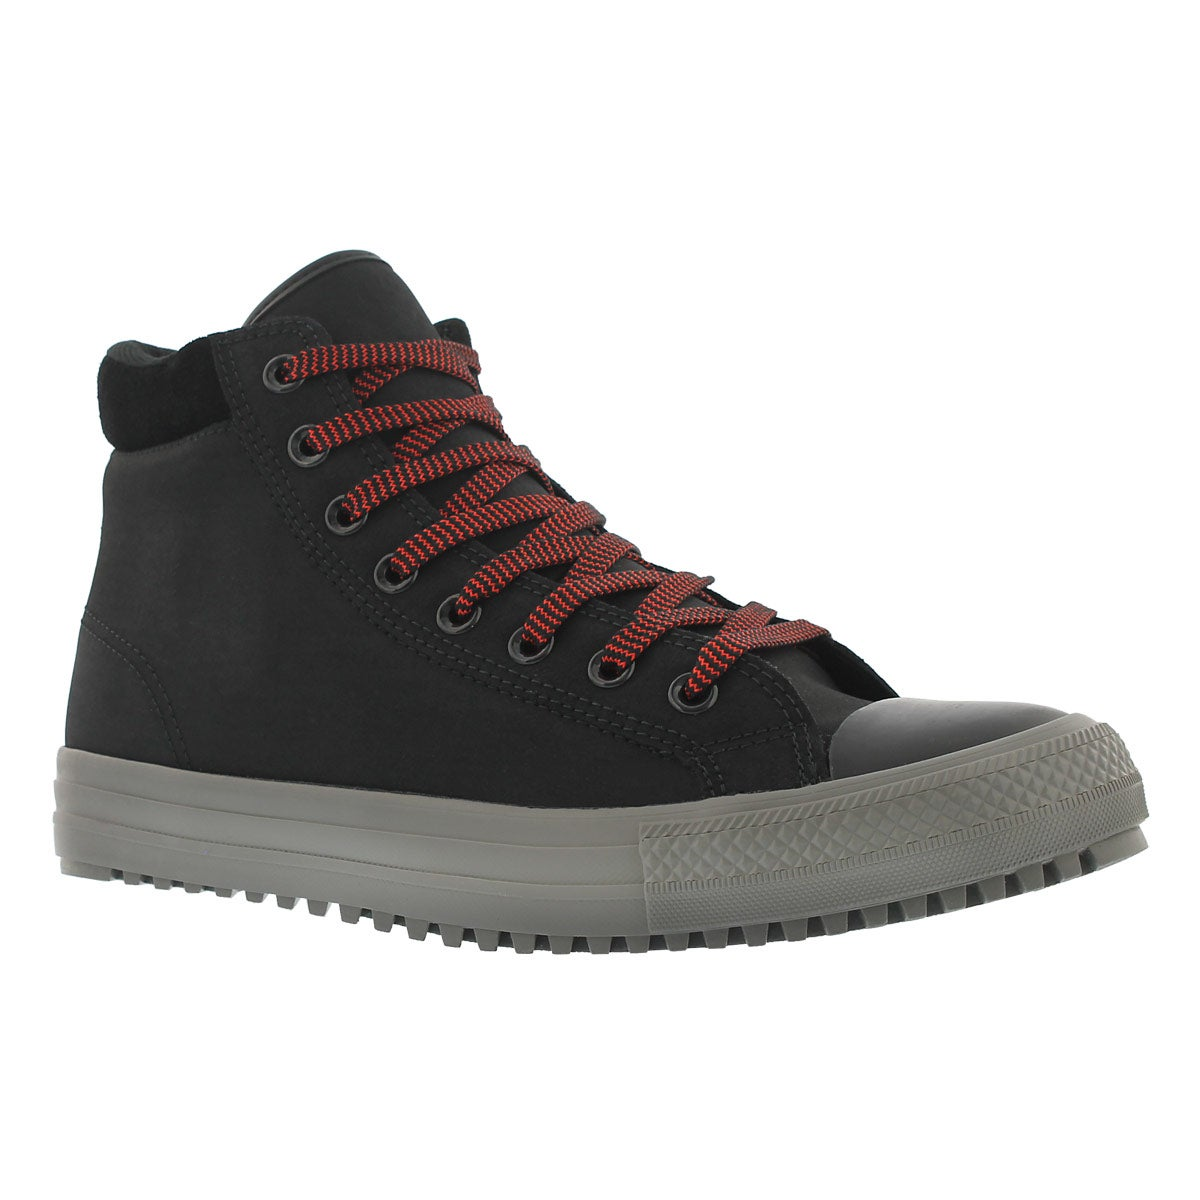 Men's CT ALL STAR CONVERSE PC C blk leather boots